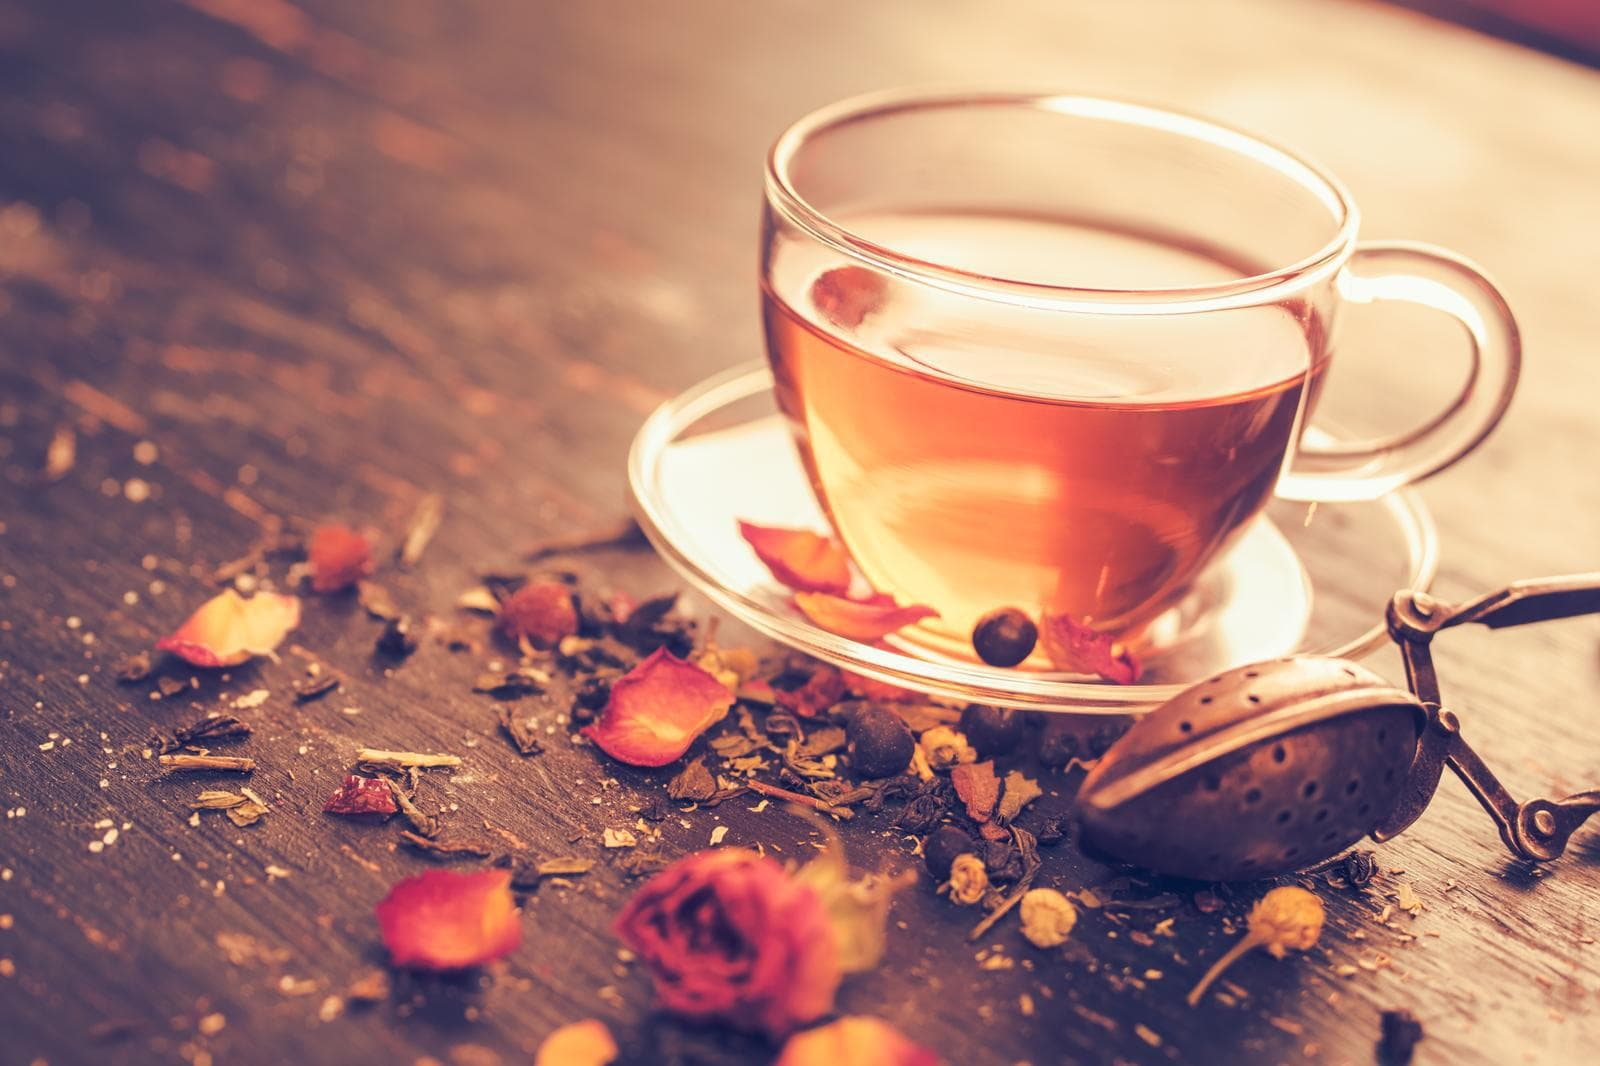 Freshly brewed tea, glass tea cup with dry rosebuds. Dry tea and tea cup on an old wooden table. Vintage toned